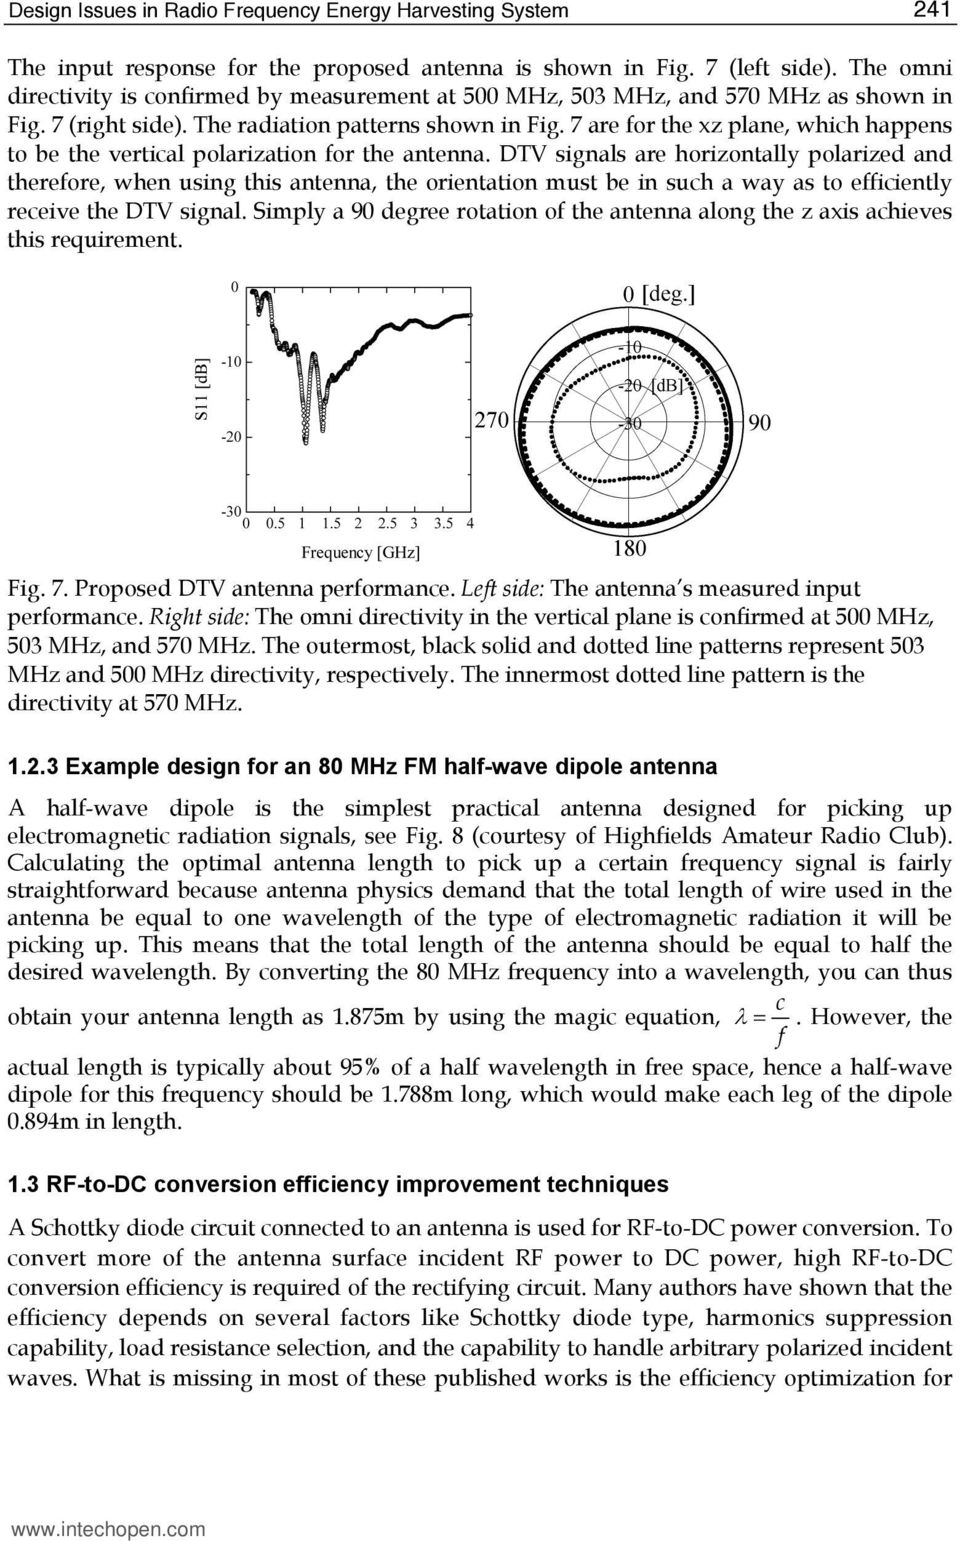 Design Issues in Radio Frequency Energy Harvesting System - PDF